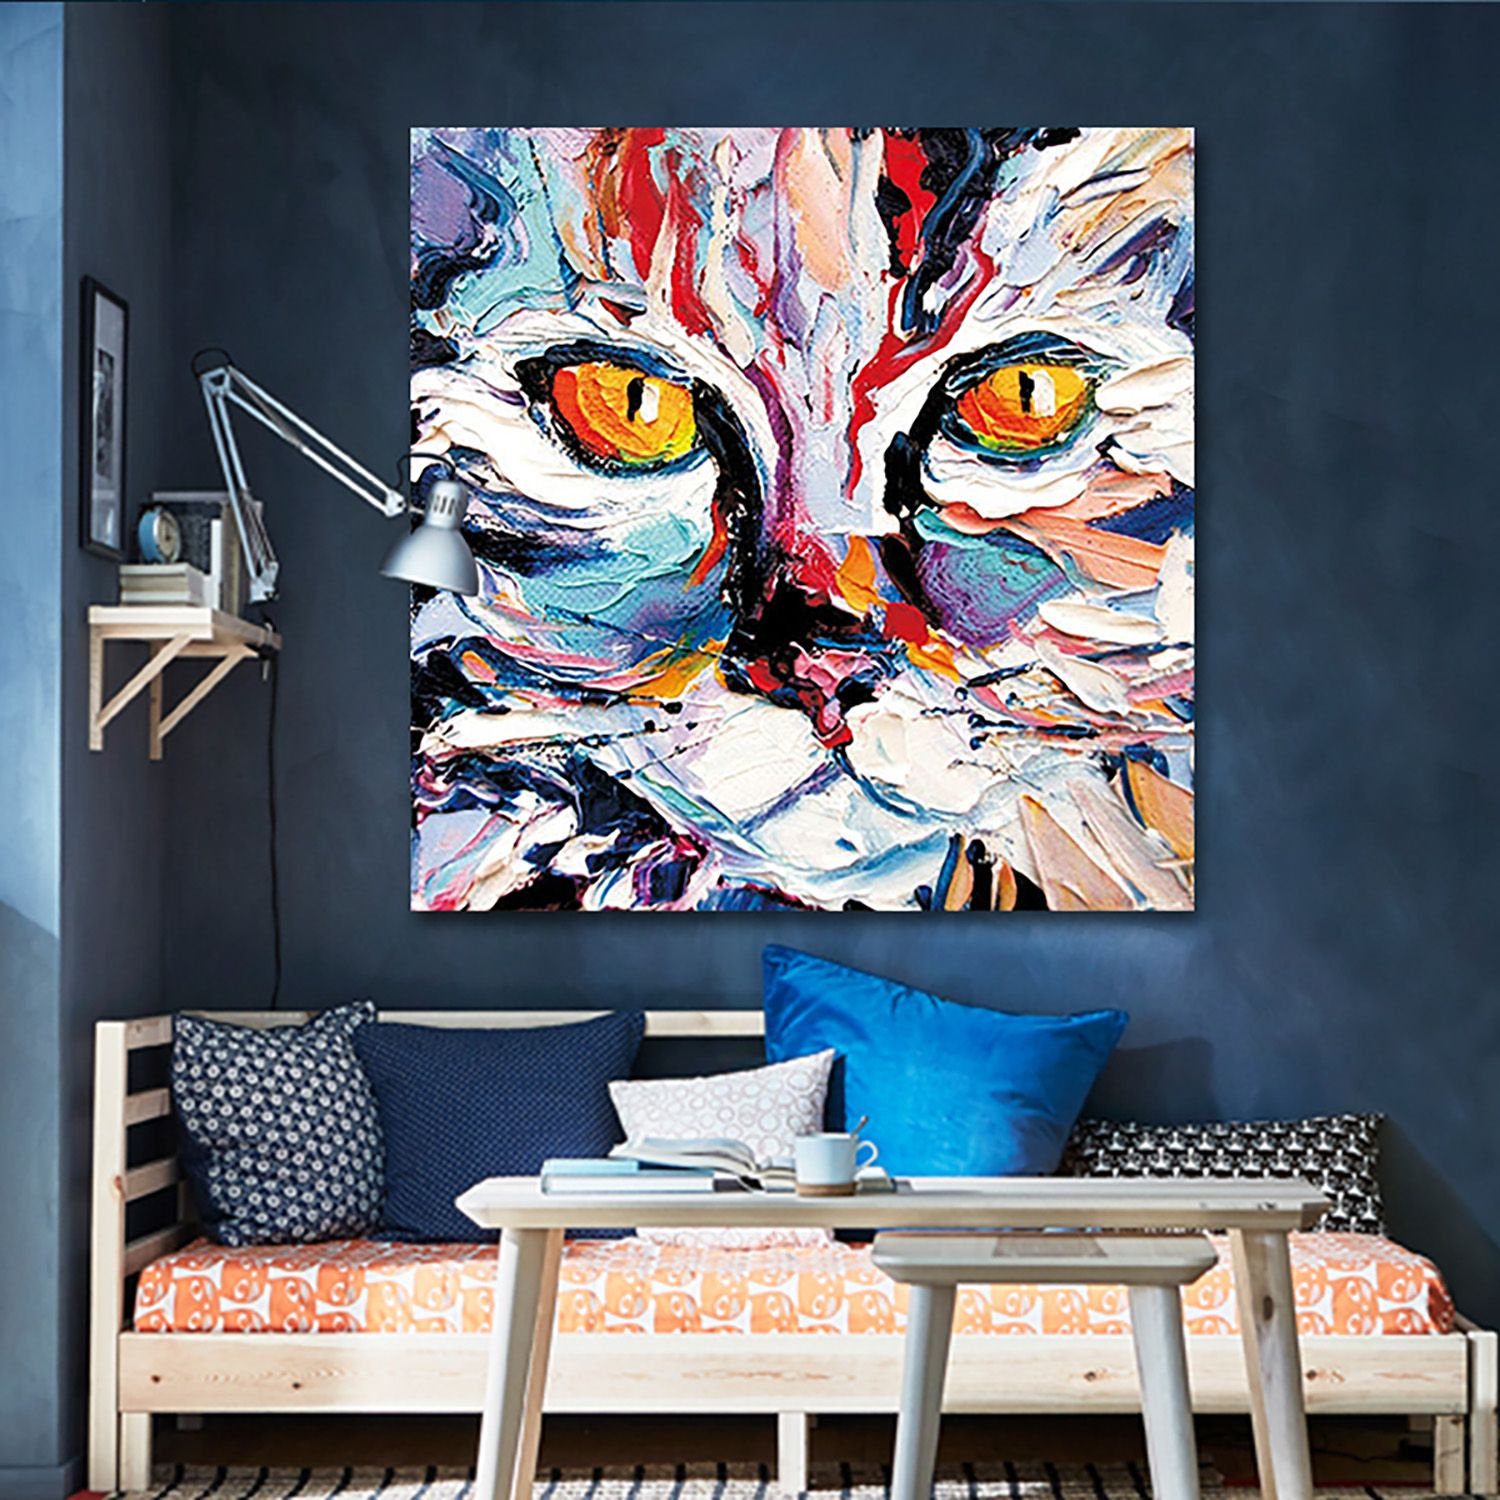 Diy painting image by Bree Breeze on Modern Paint By